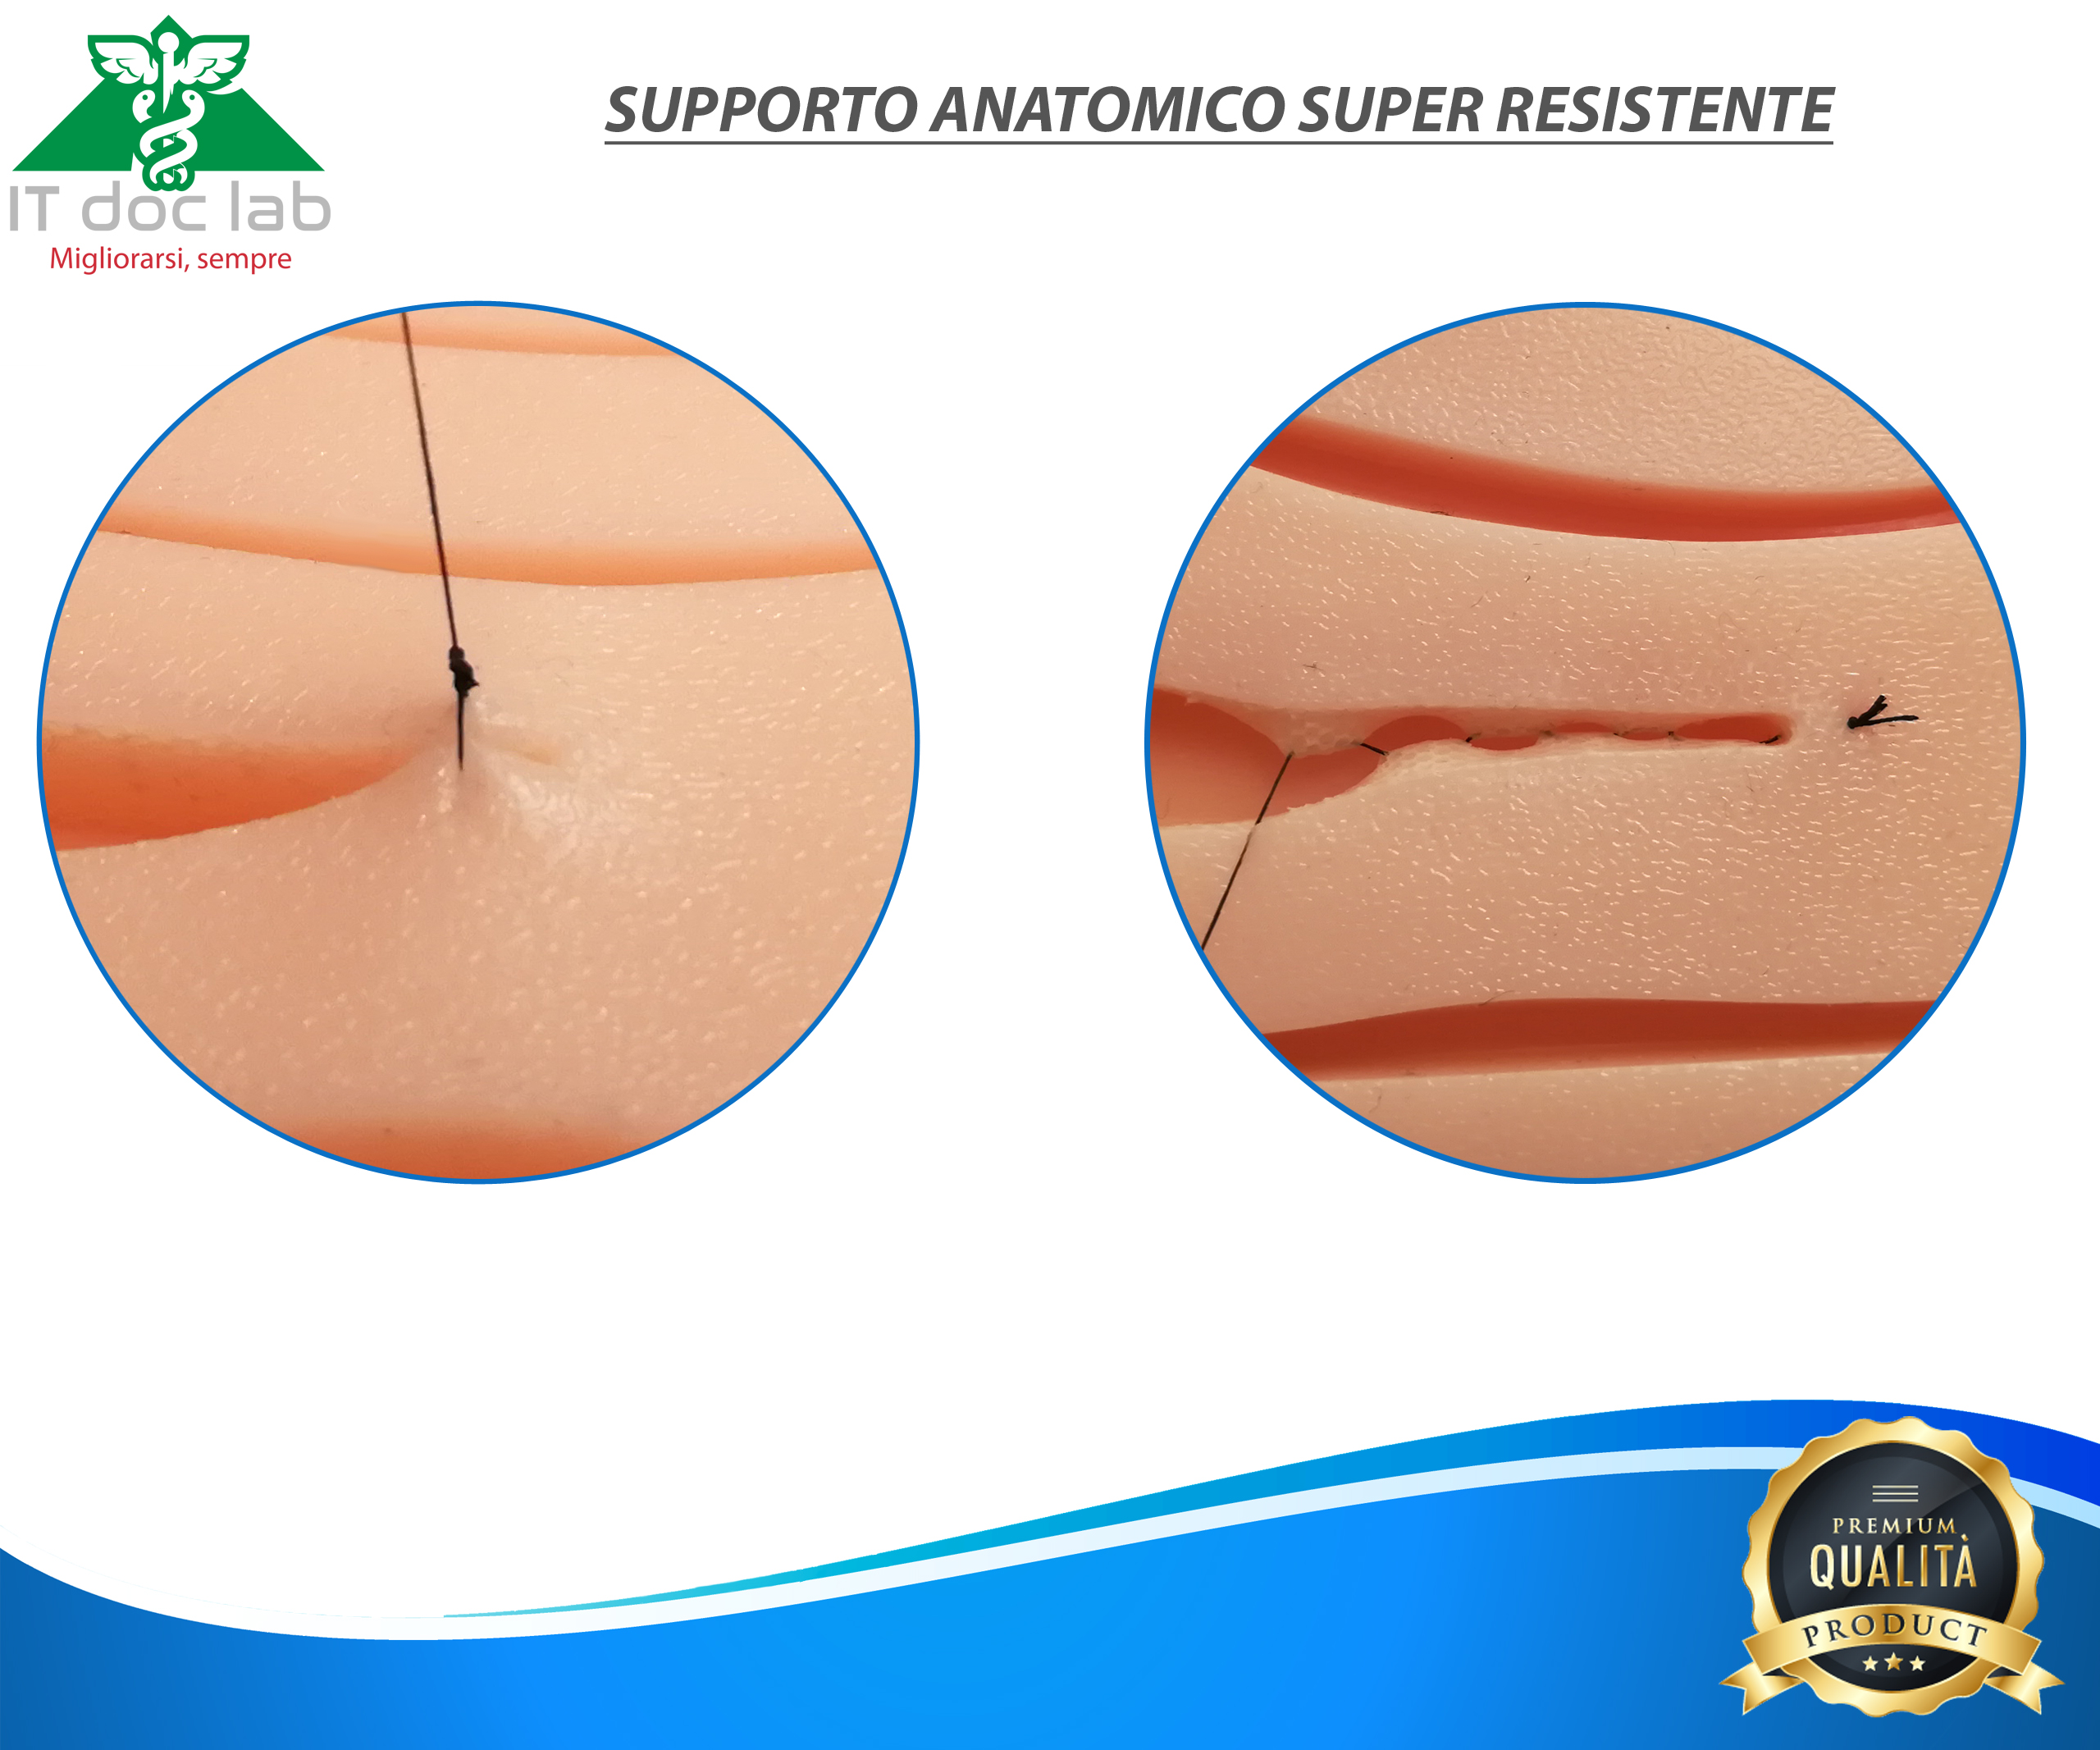 Kit da sutura super resistente